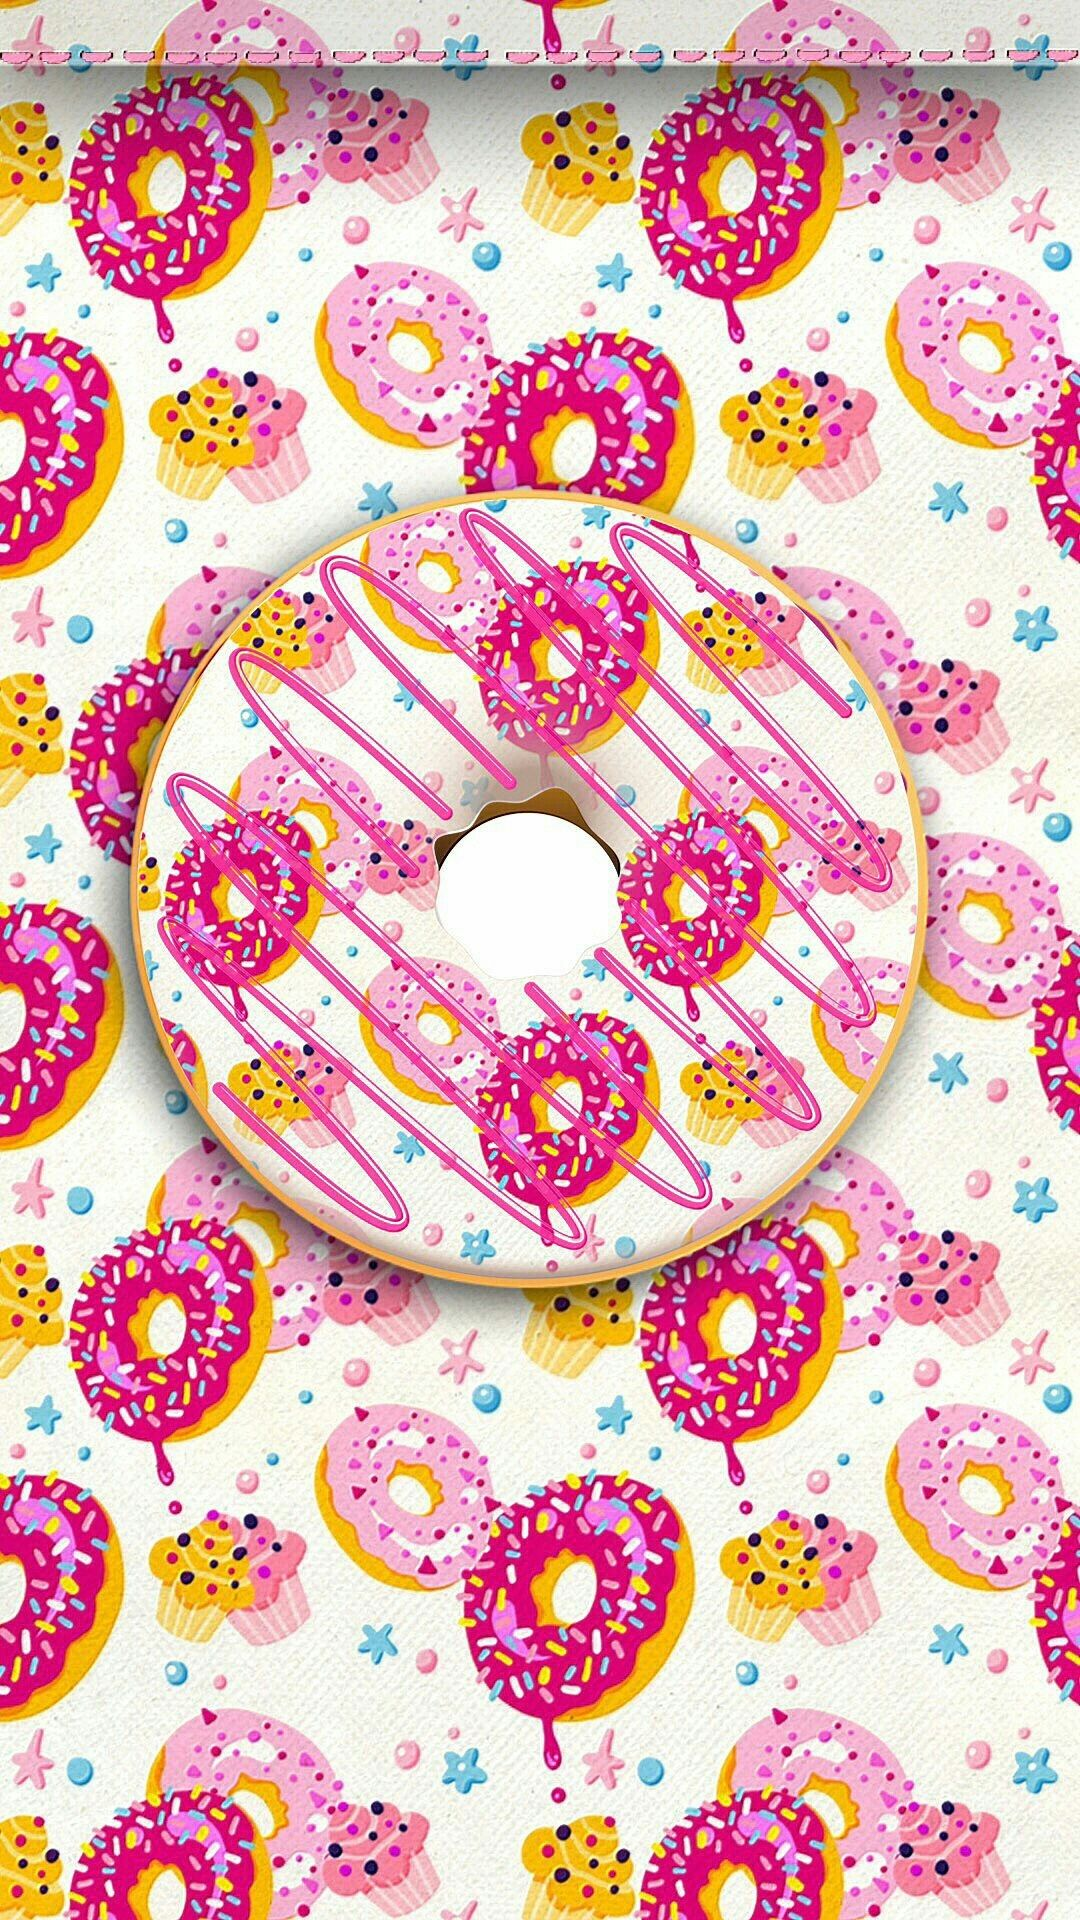 Simple Wallpaper Hello Kitty Donut - 02c19f79d86cb7c617721ba589f060c5  Perfect Image Reference_347517.jpg